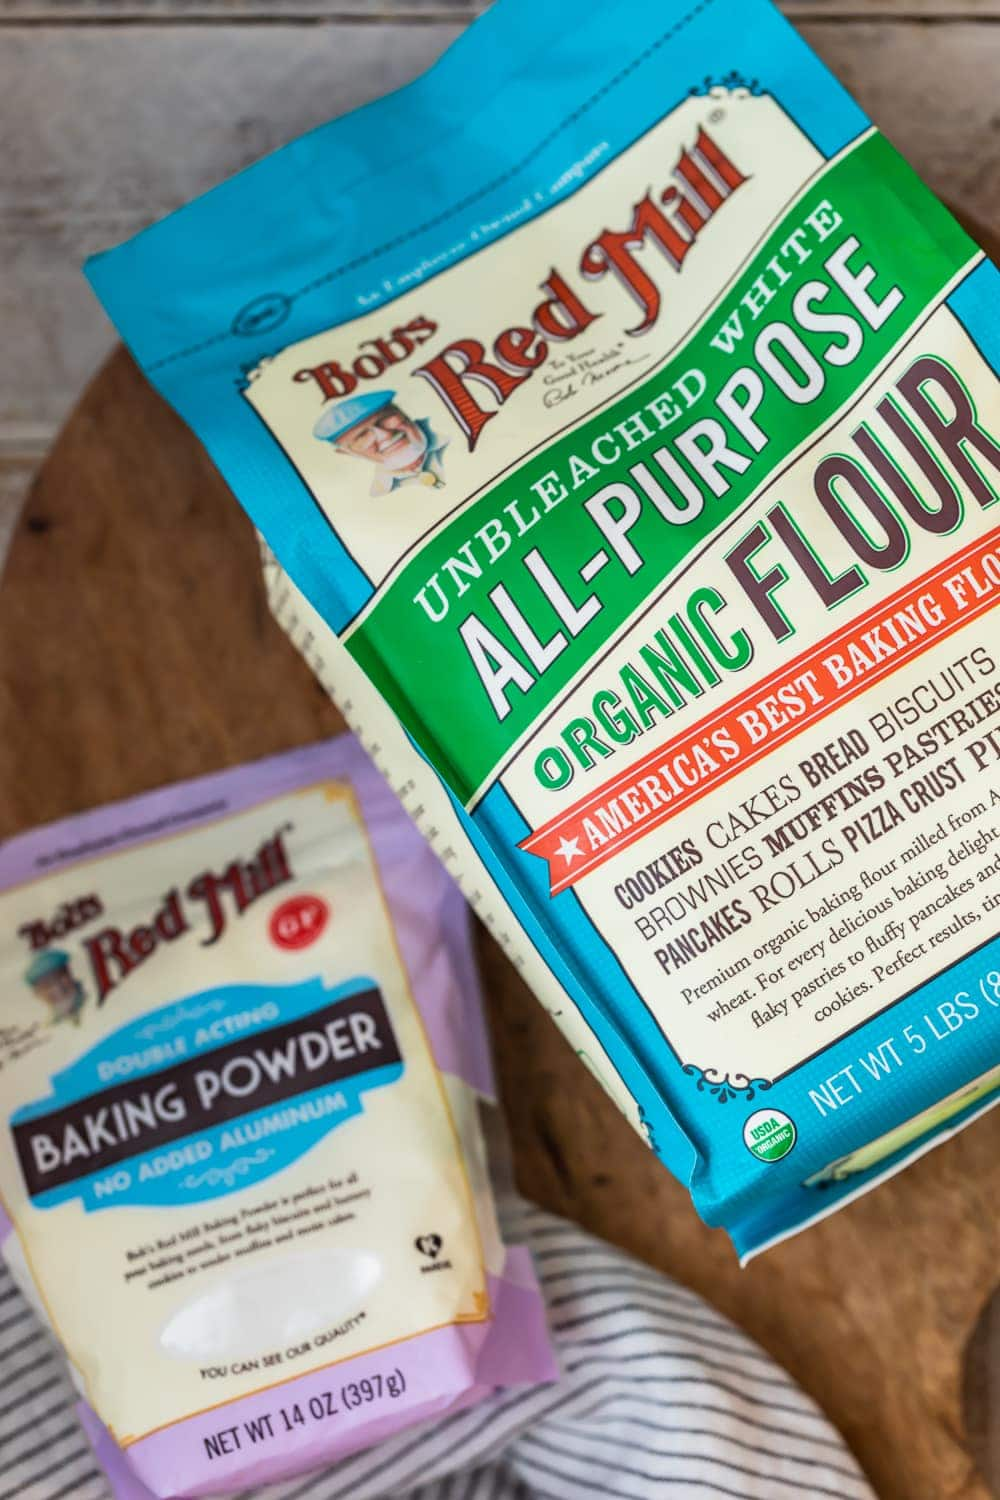 a bag of bob's red mill flour and baking powder